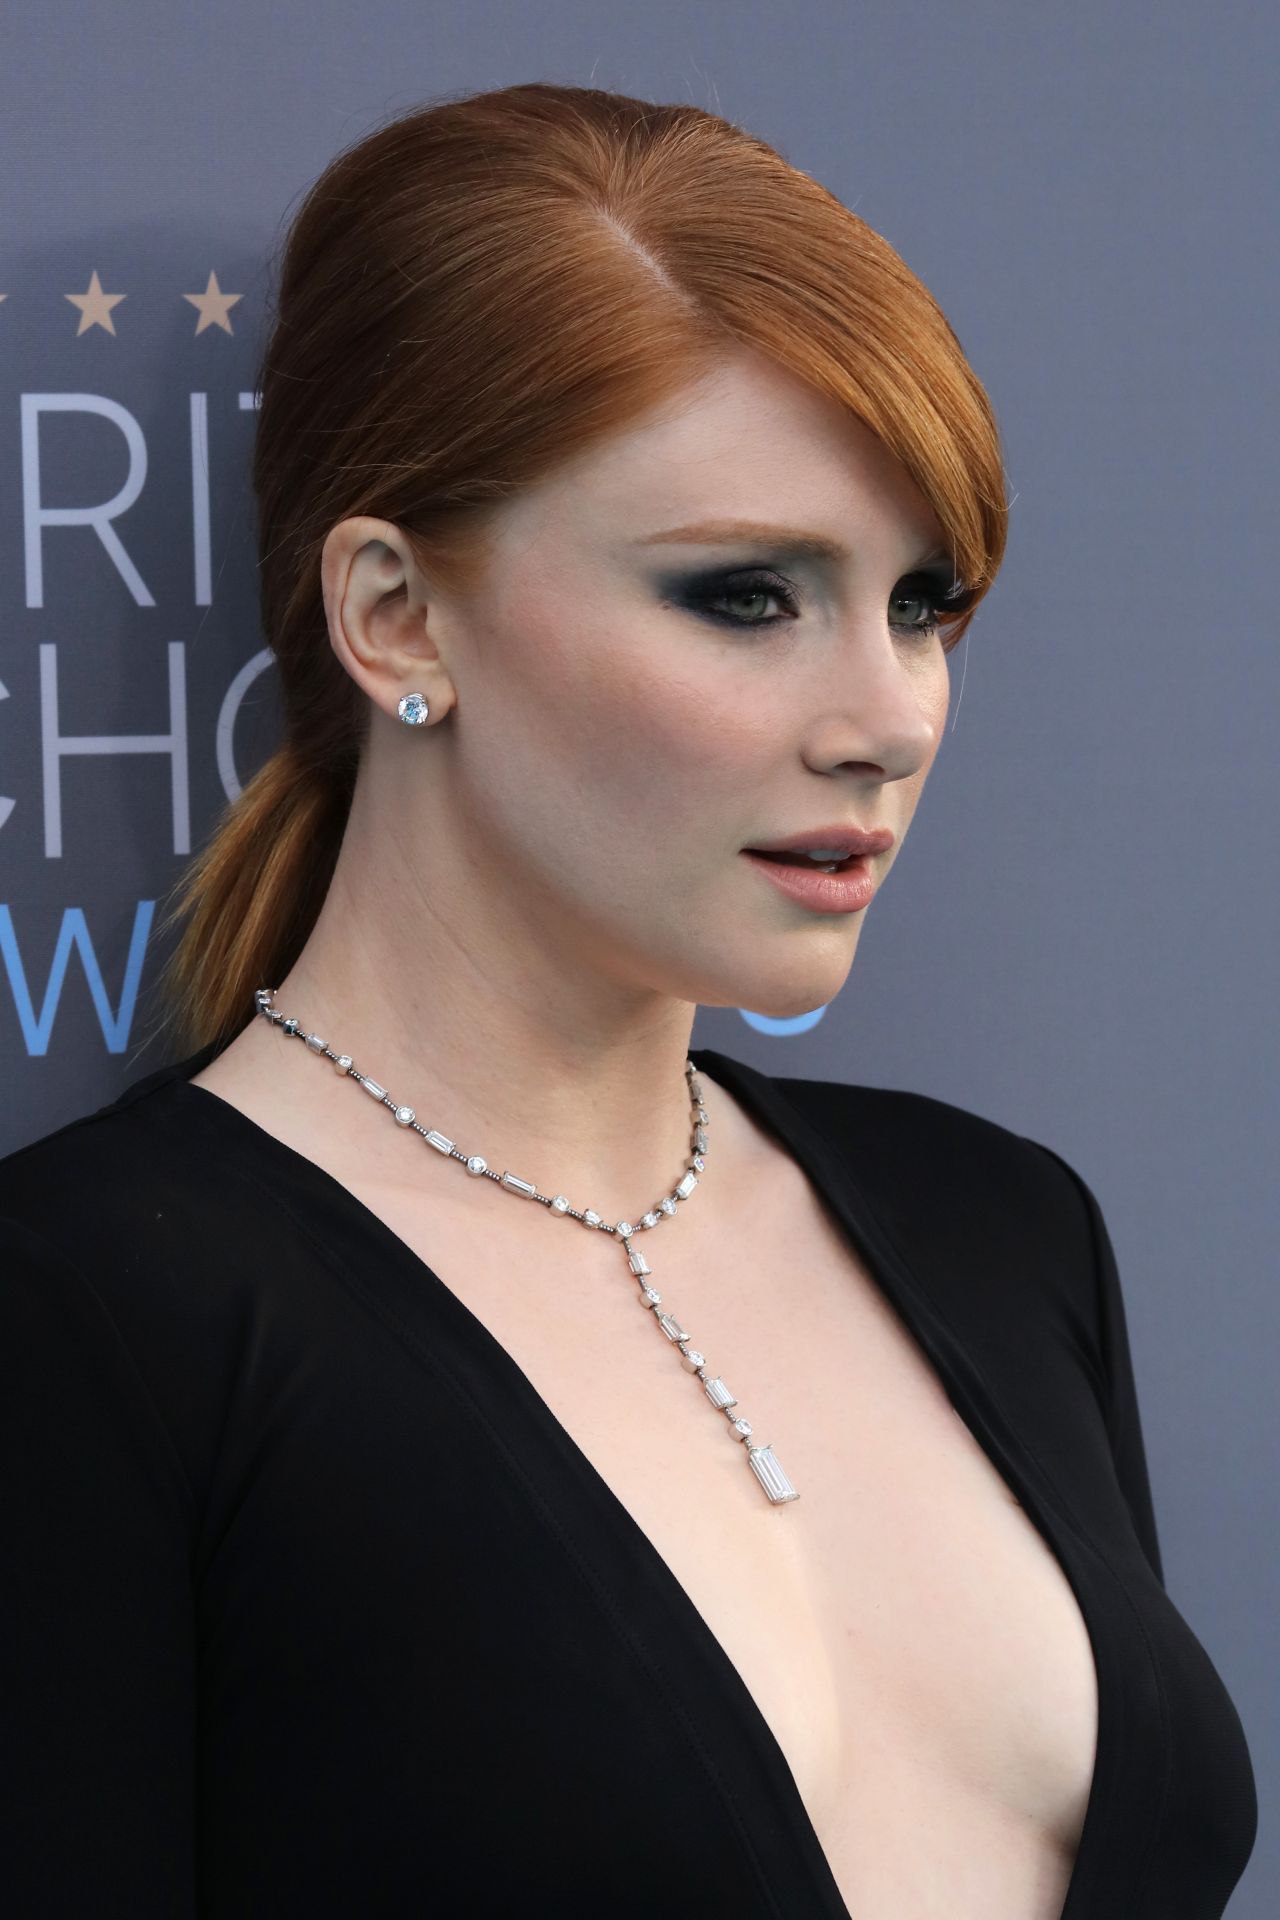 Young Bryce Dallas Howard nudes (97 photos), Topless, Paparazzi, Feet, swimsuit 2017